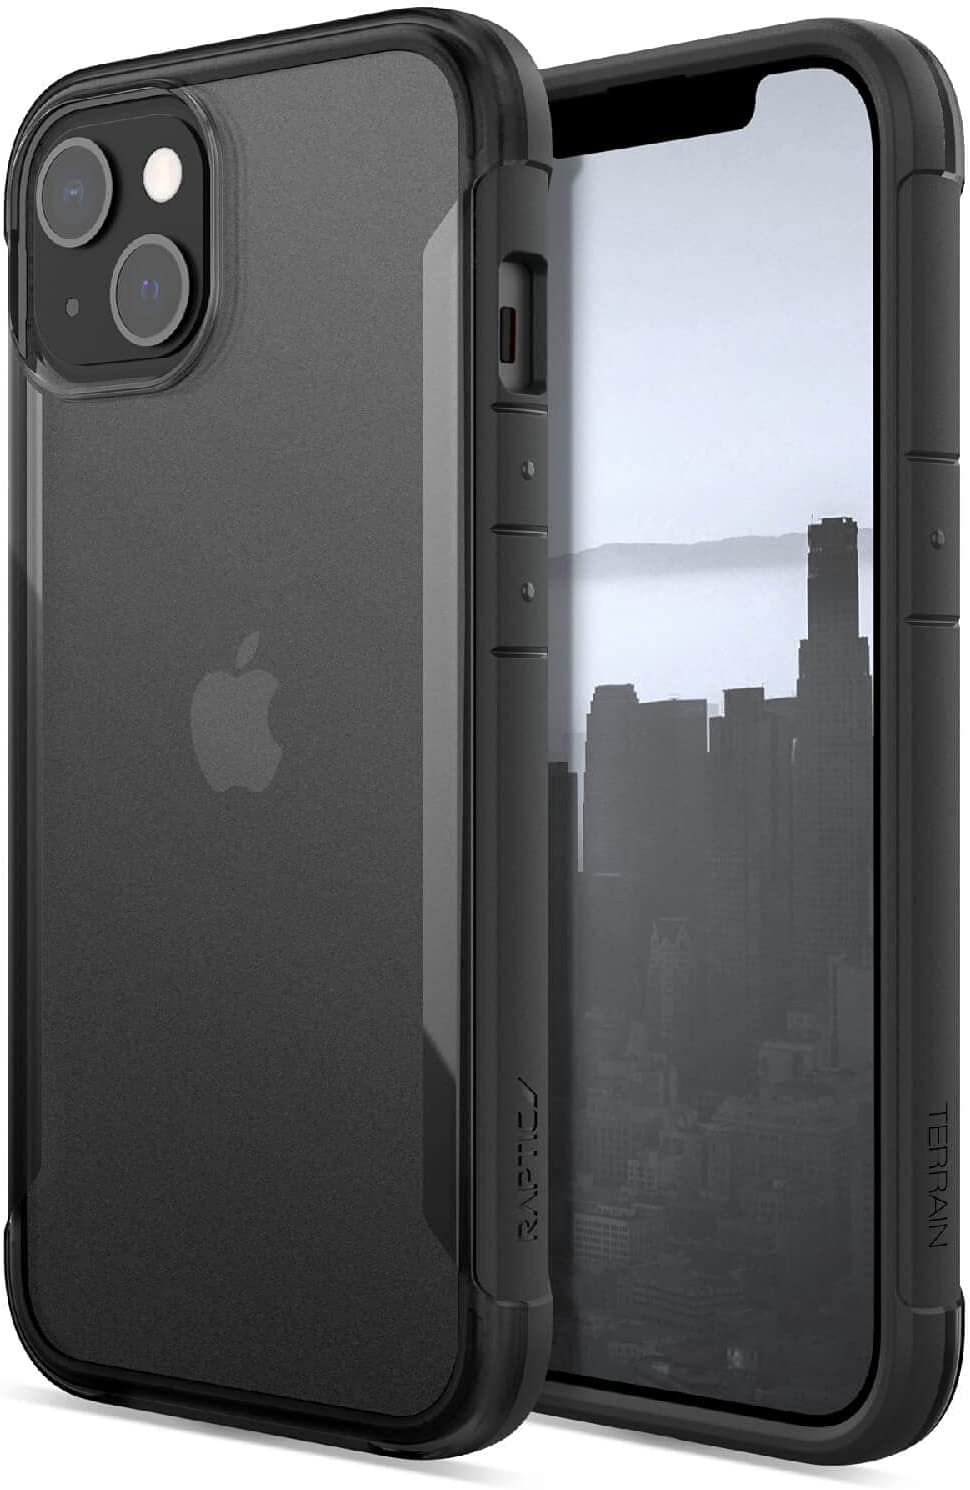 Raptic Terrain Case Compatible with iPhone 13 Case, Made in USA, Clear Polycarbonate Back, 10ft Drop Protection, Fits iPhone 13, Black/Clear